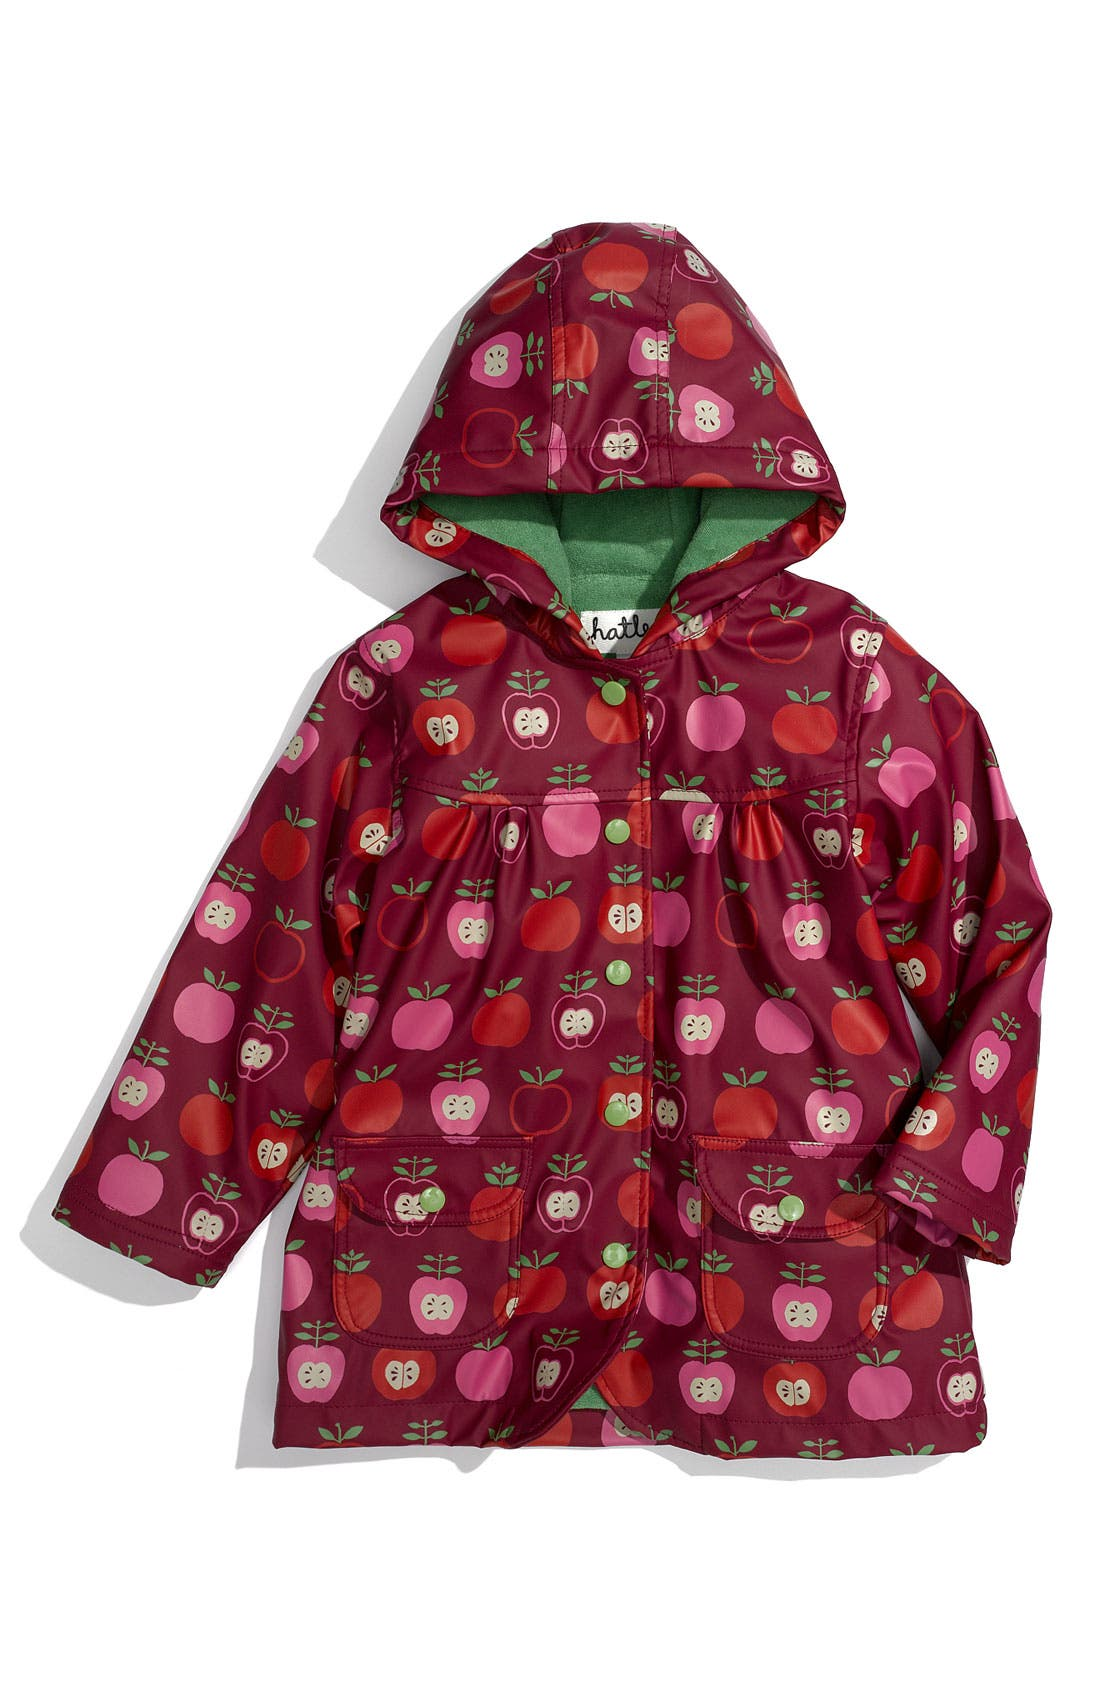 Alternate Image 1 Selected - Hatley Apple Print Raincoat (Infant, Toddler & Little Girls)